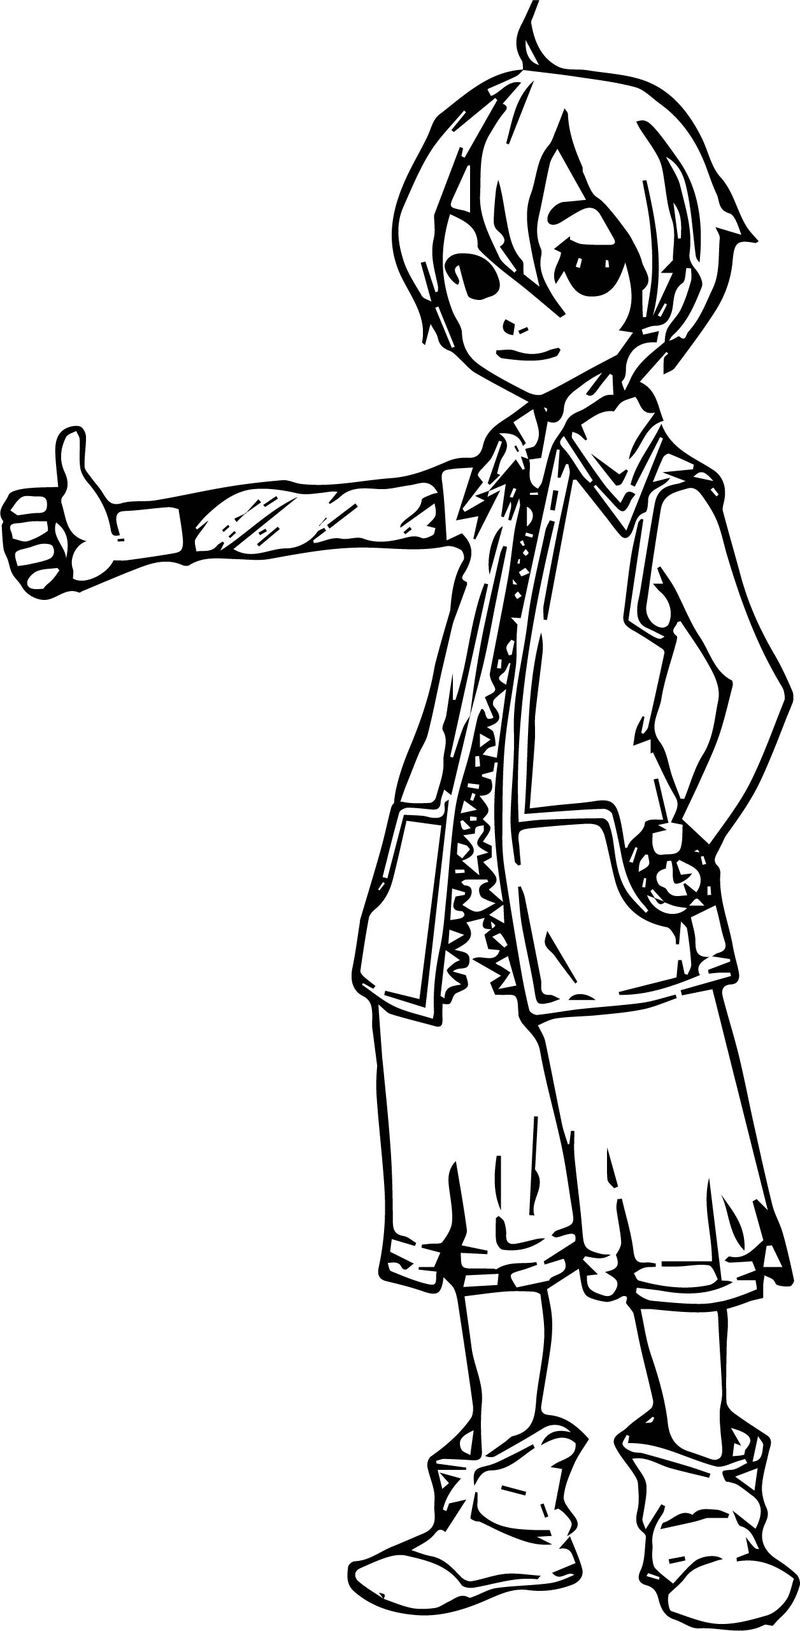 My Character Design Coloring Page